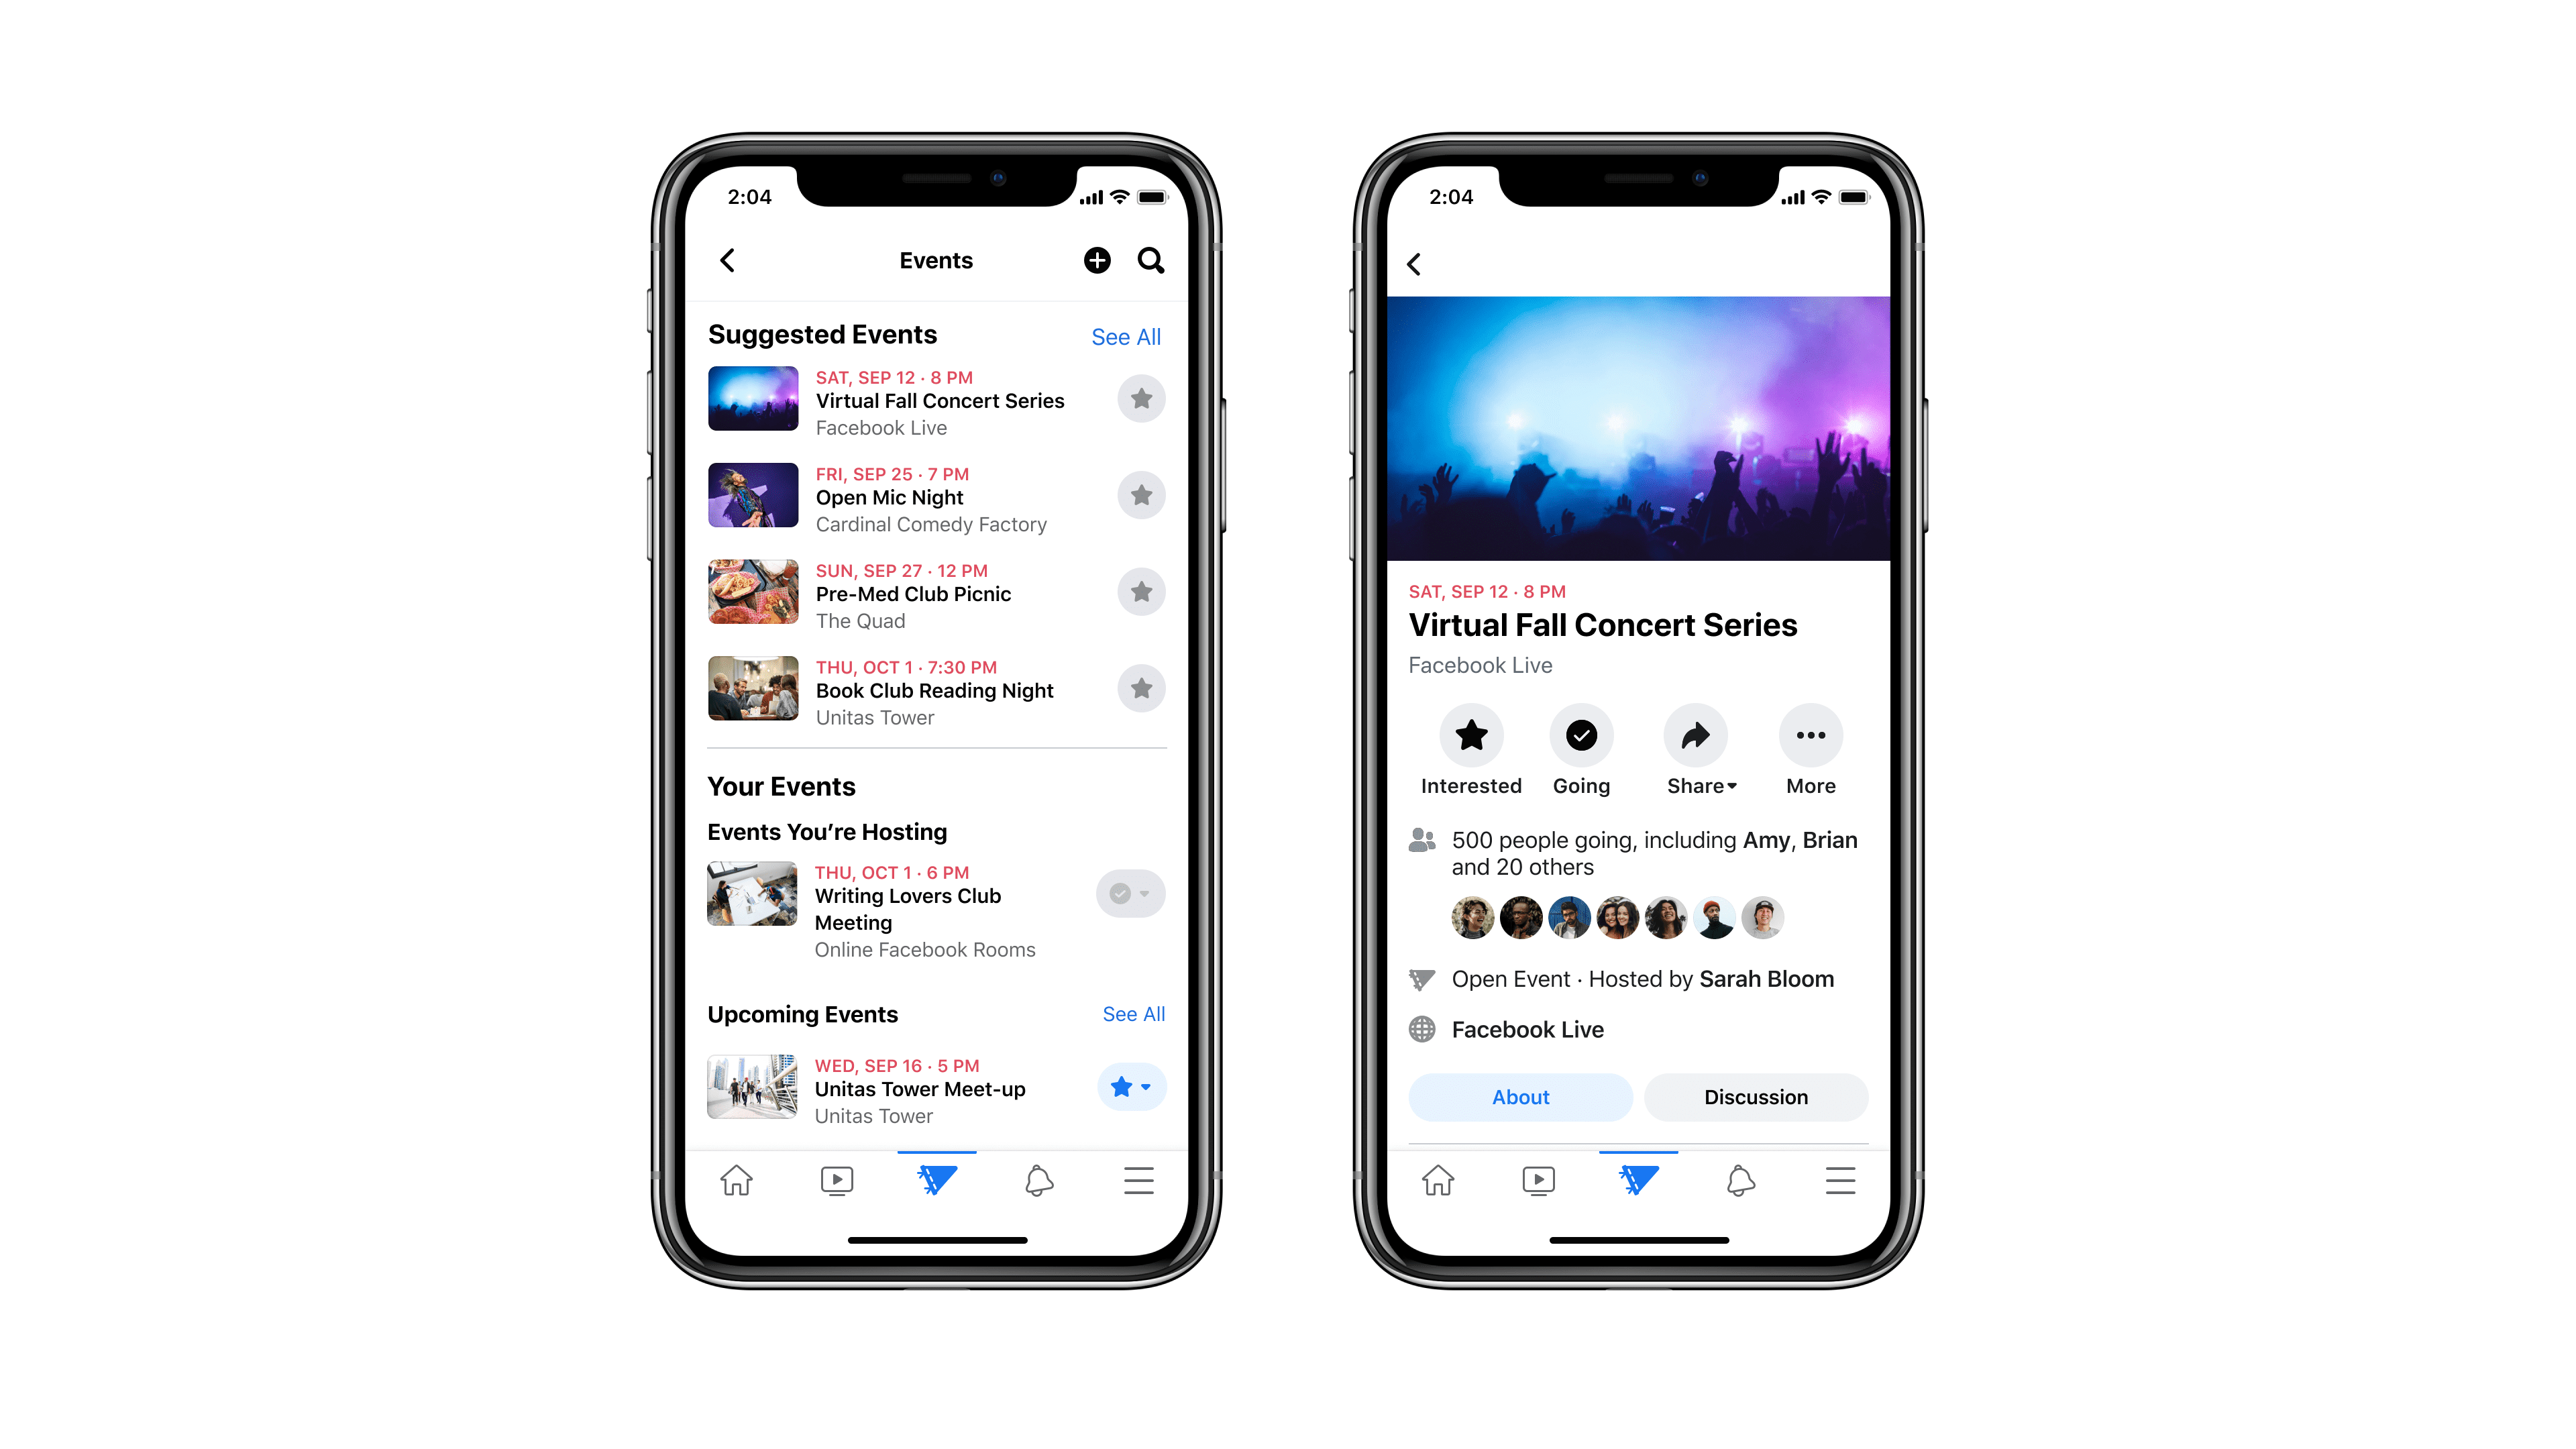 Facebook Campus' events planning feature